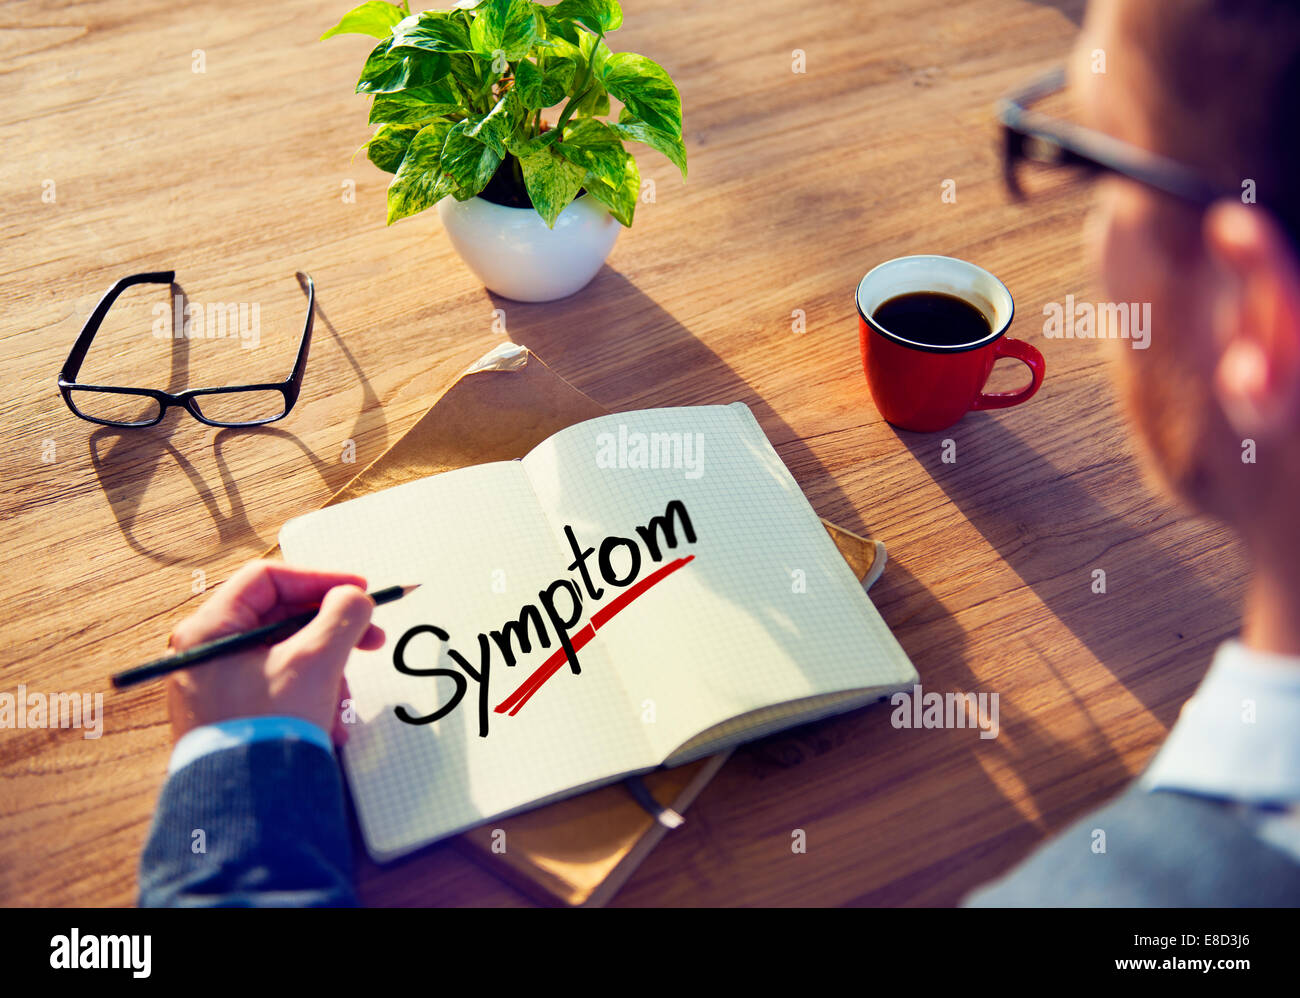 A Man Brainstorming about Symptom Concept - Stock Image